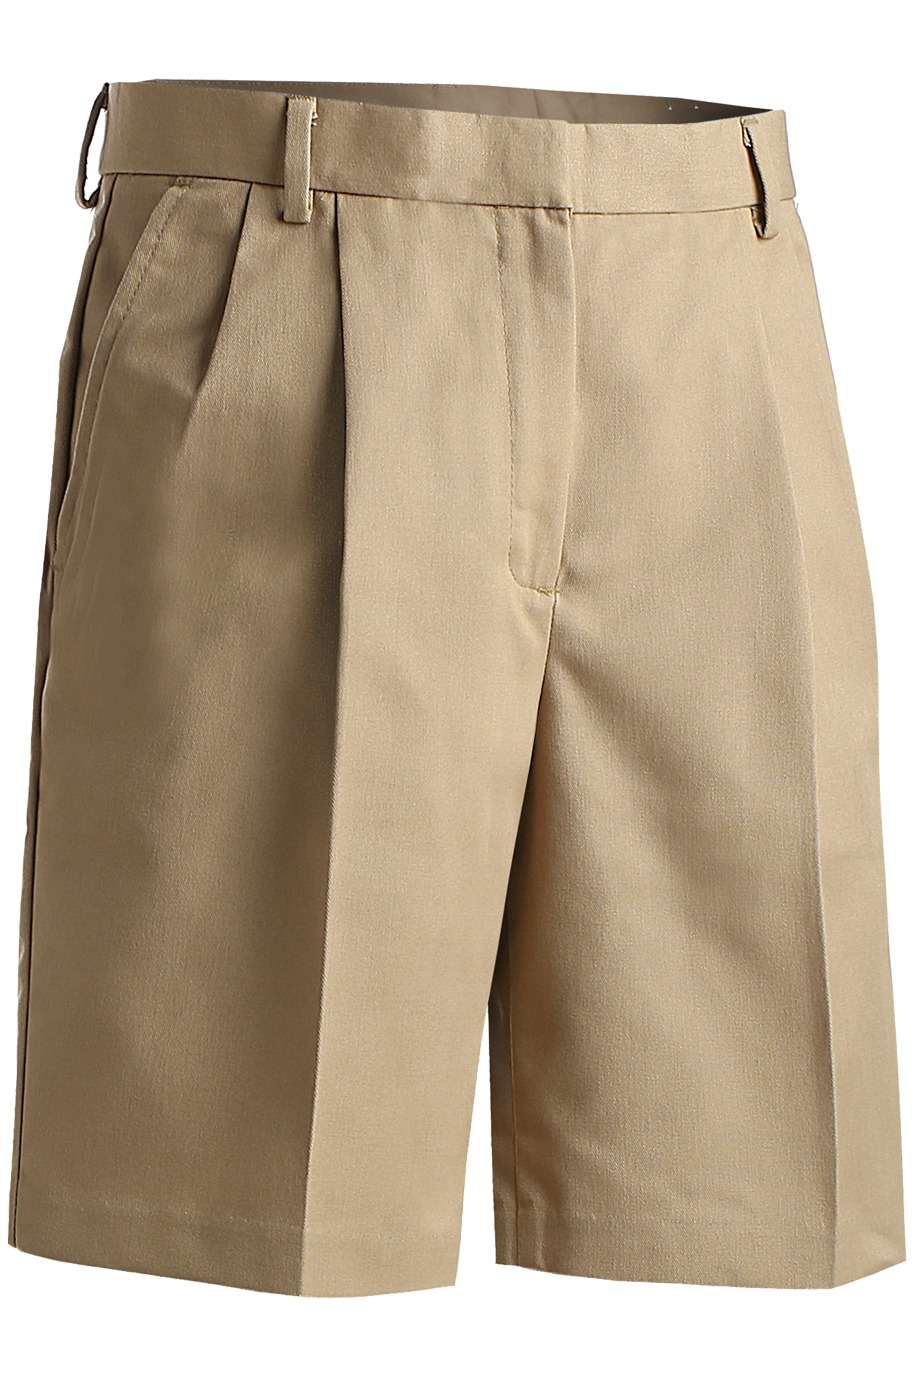 c16225e0f05 edwards-garment-business-casual-pleated-front-chino-short-9-9-inseam-18.jpg